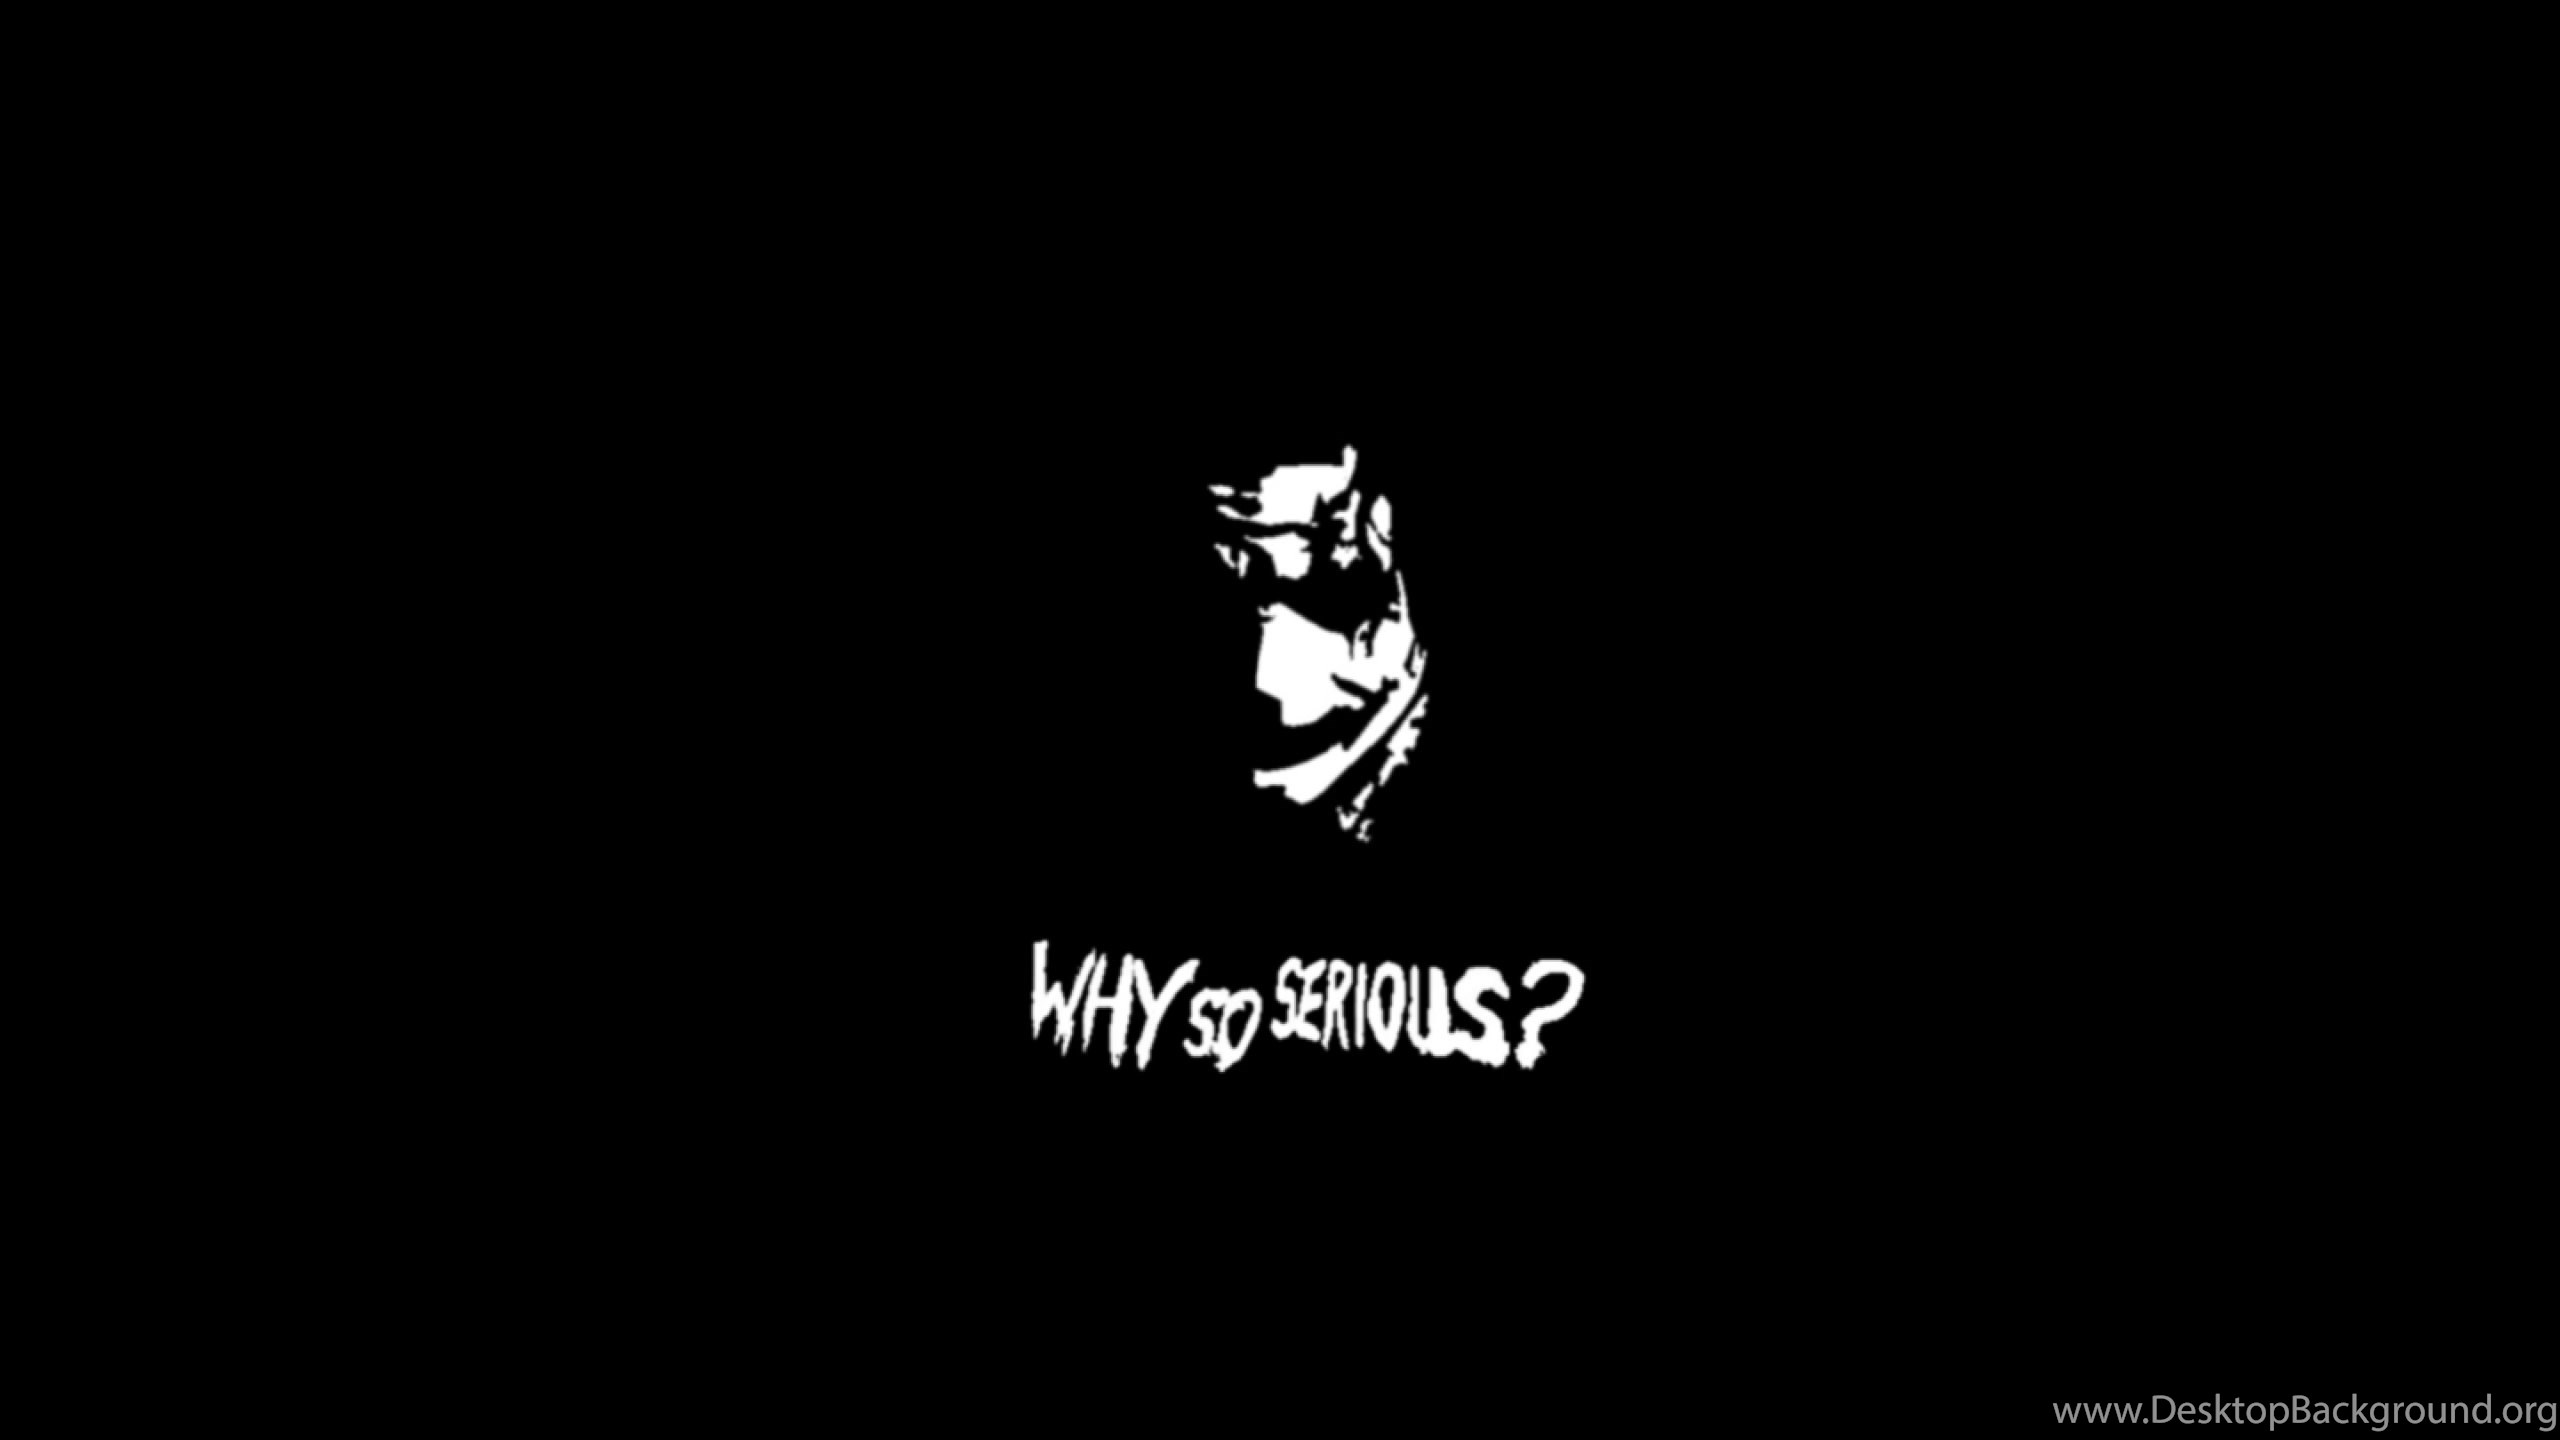 Download Wallpapers 2560x1600 The Joker Why So Serious